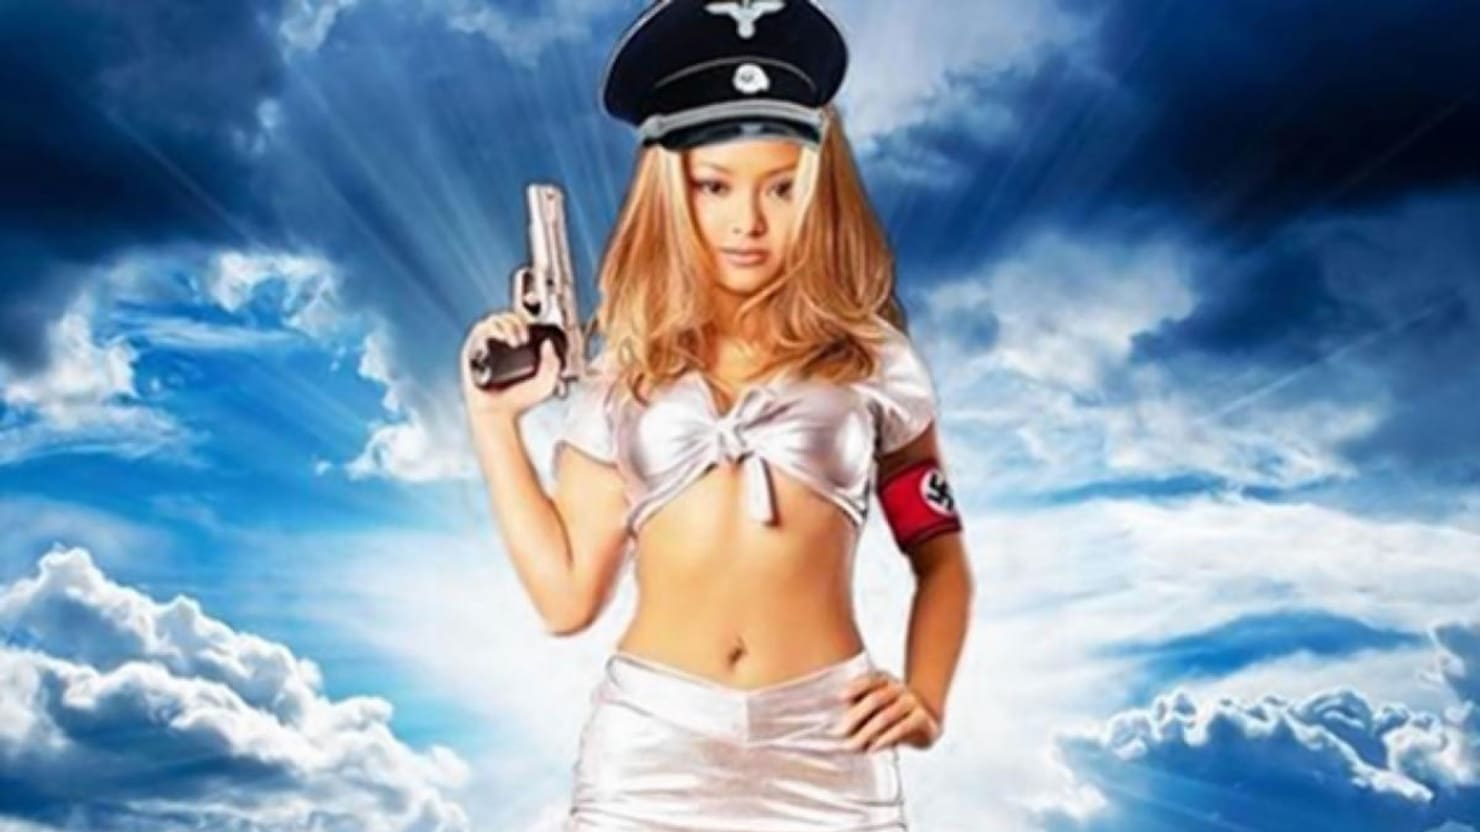 Not Tila tequila fucks dude